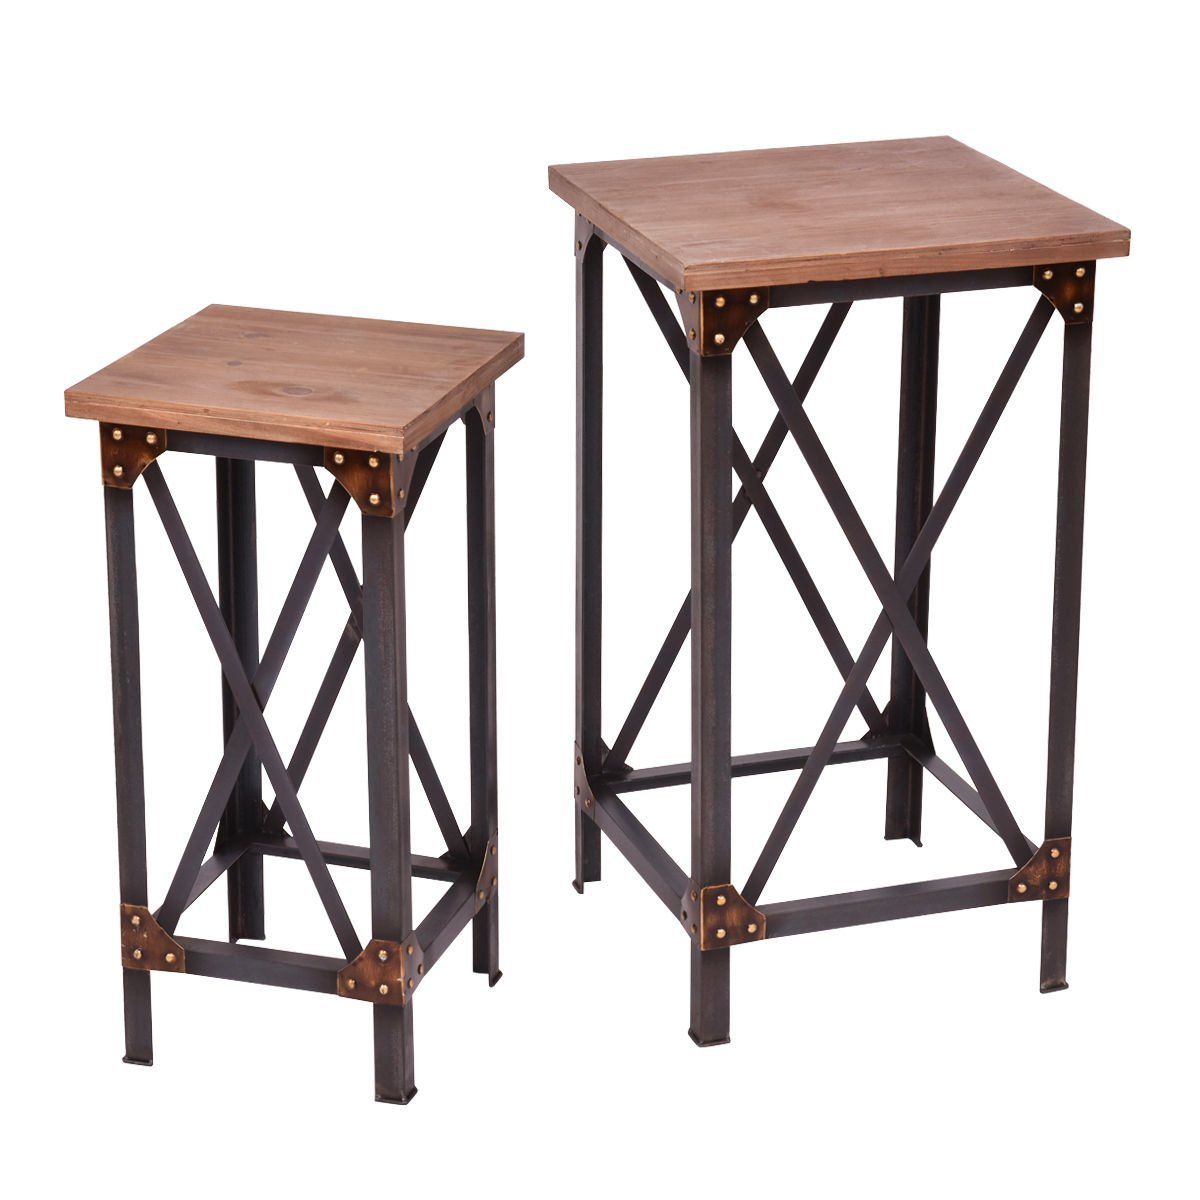 rustic wood accent tables find table get quotations set metal industrial side end plant display stands carpet transition piece stand legs black and silver red living room glass